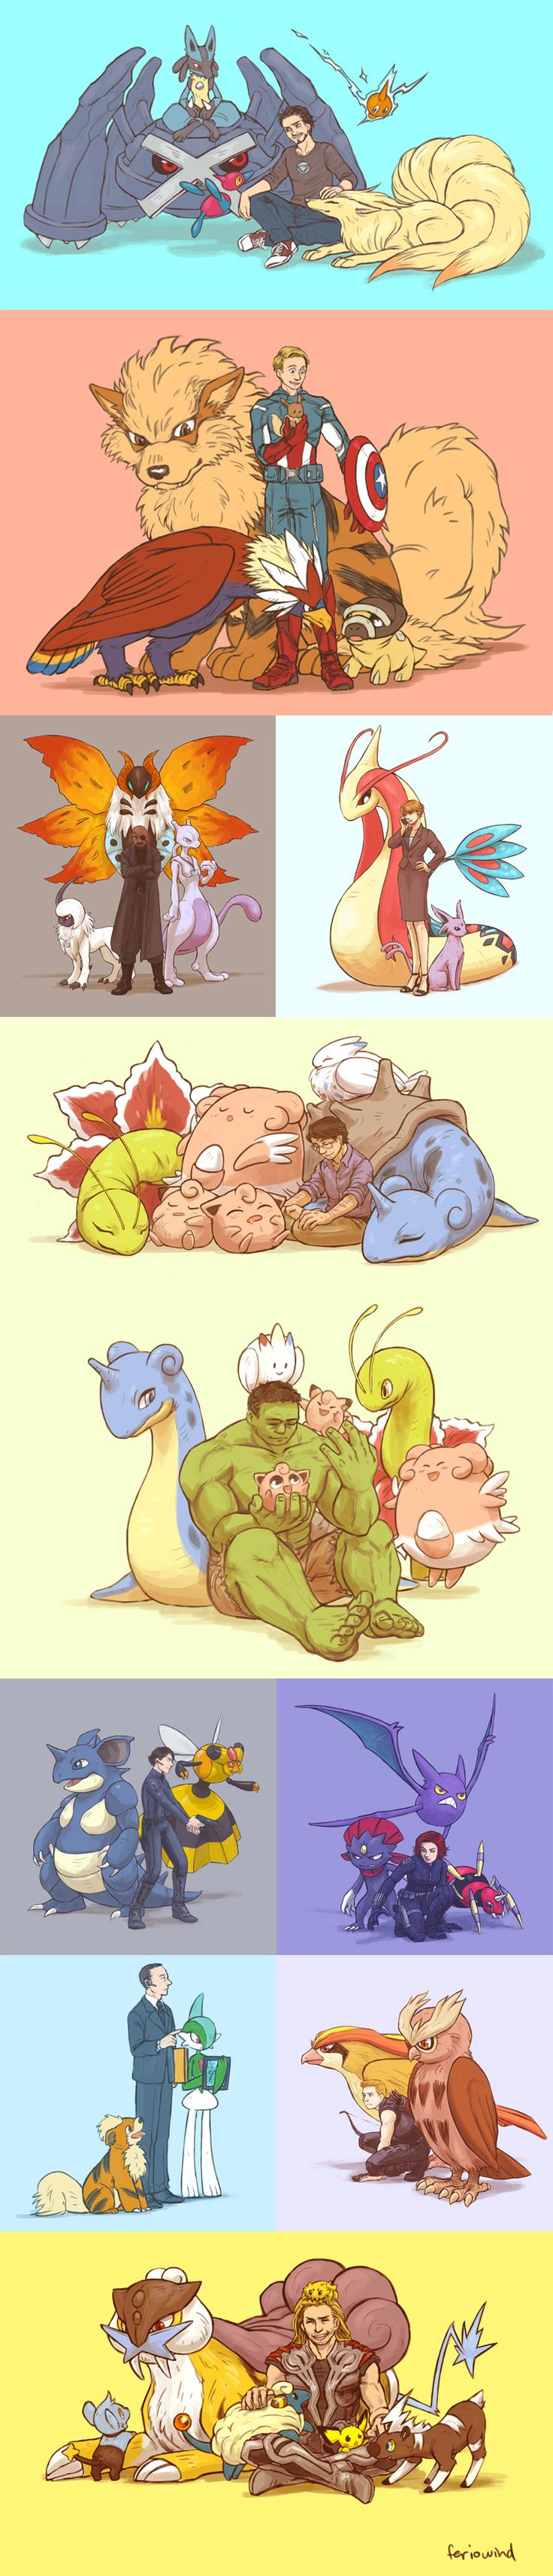 Avengers' Pokémon Assemble! I love everything about this :D